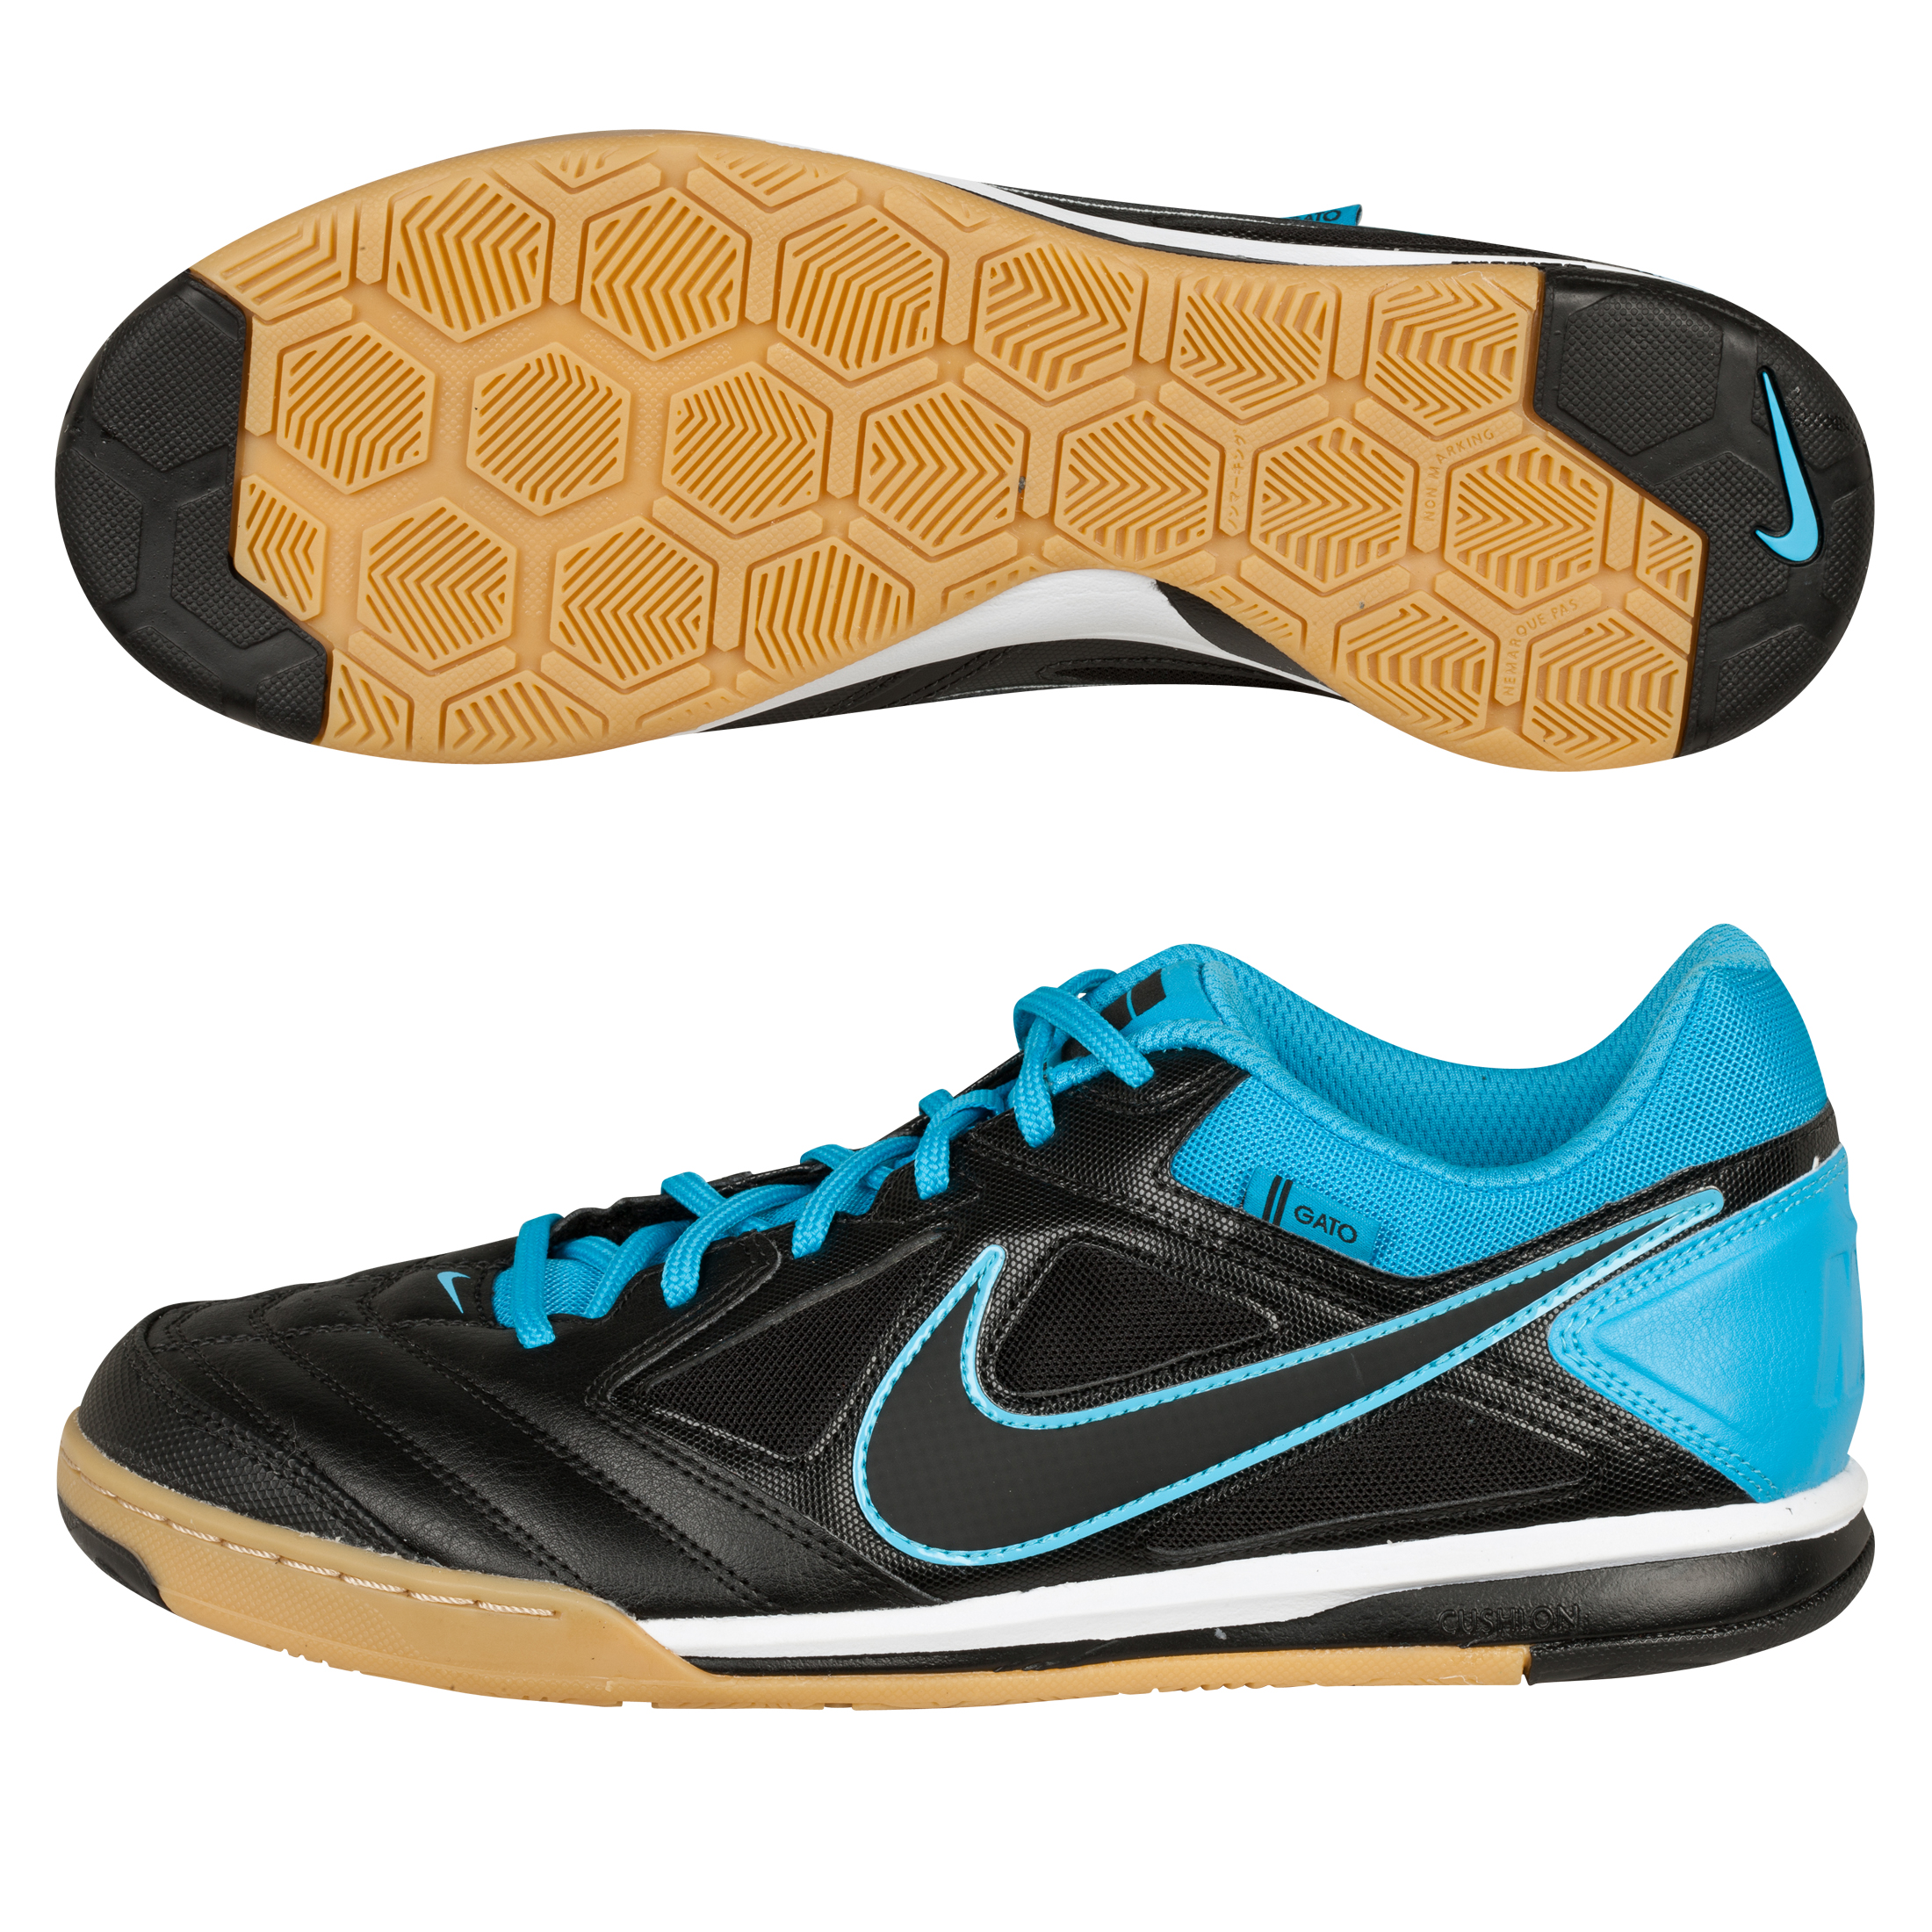 Nike Nike5 Gato Trainers - Black/Black/Current Blue